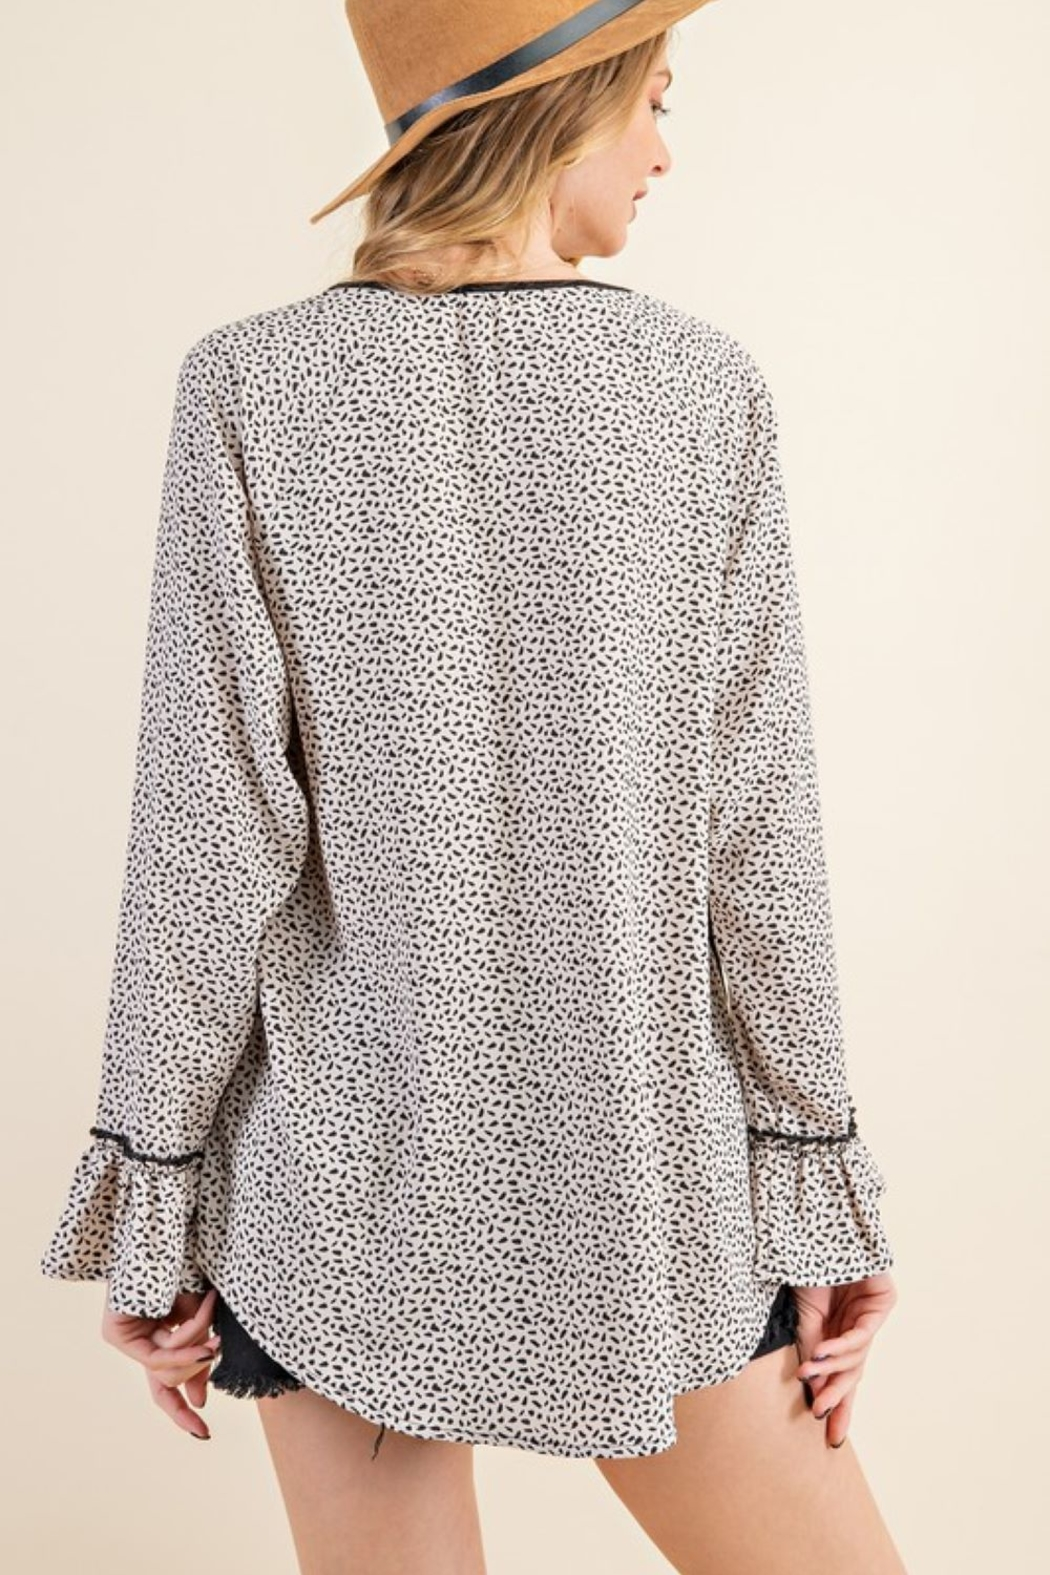 143 Story Leopard Contrast Top with Ruffle Sleeve - Side Cropped Image